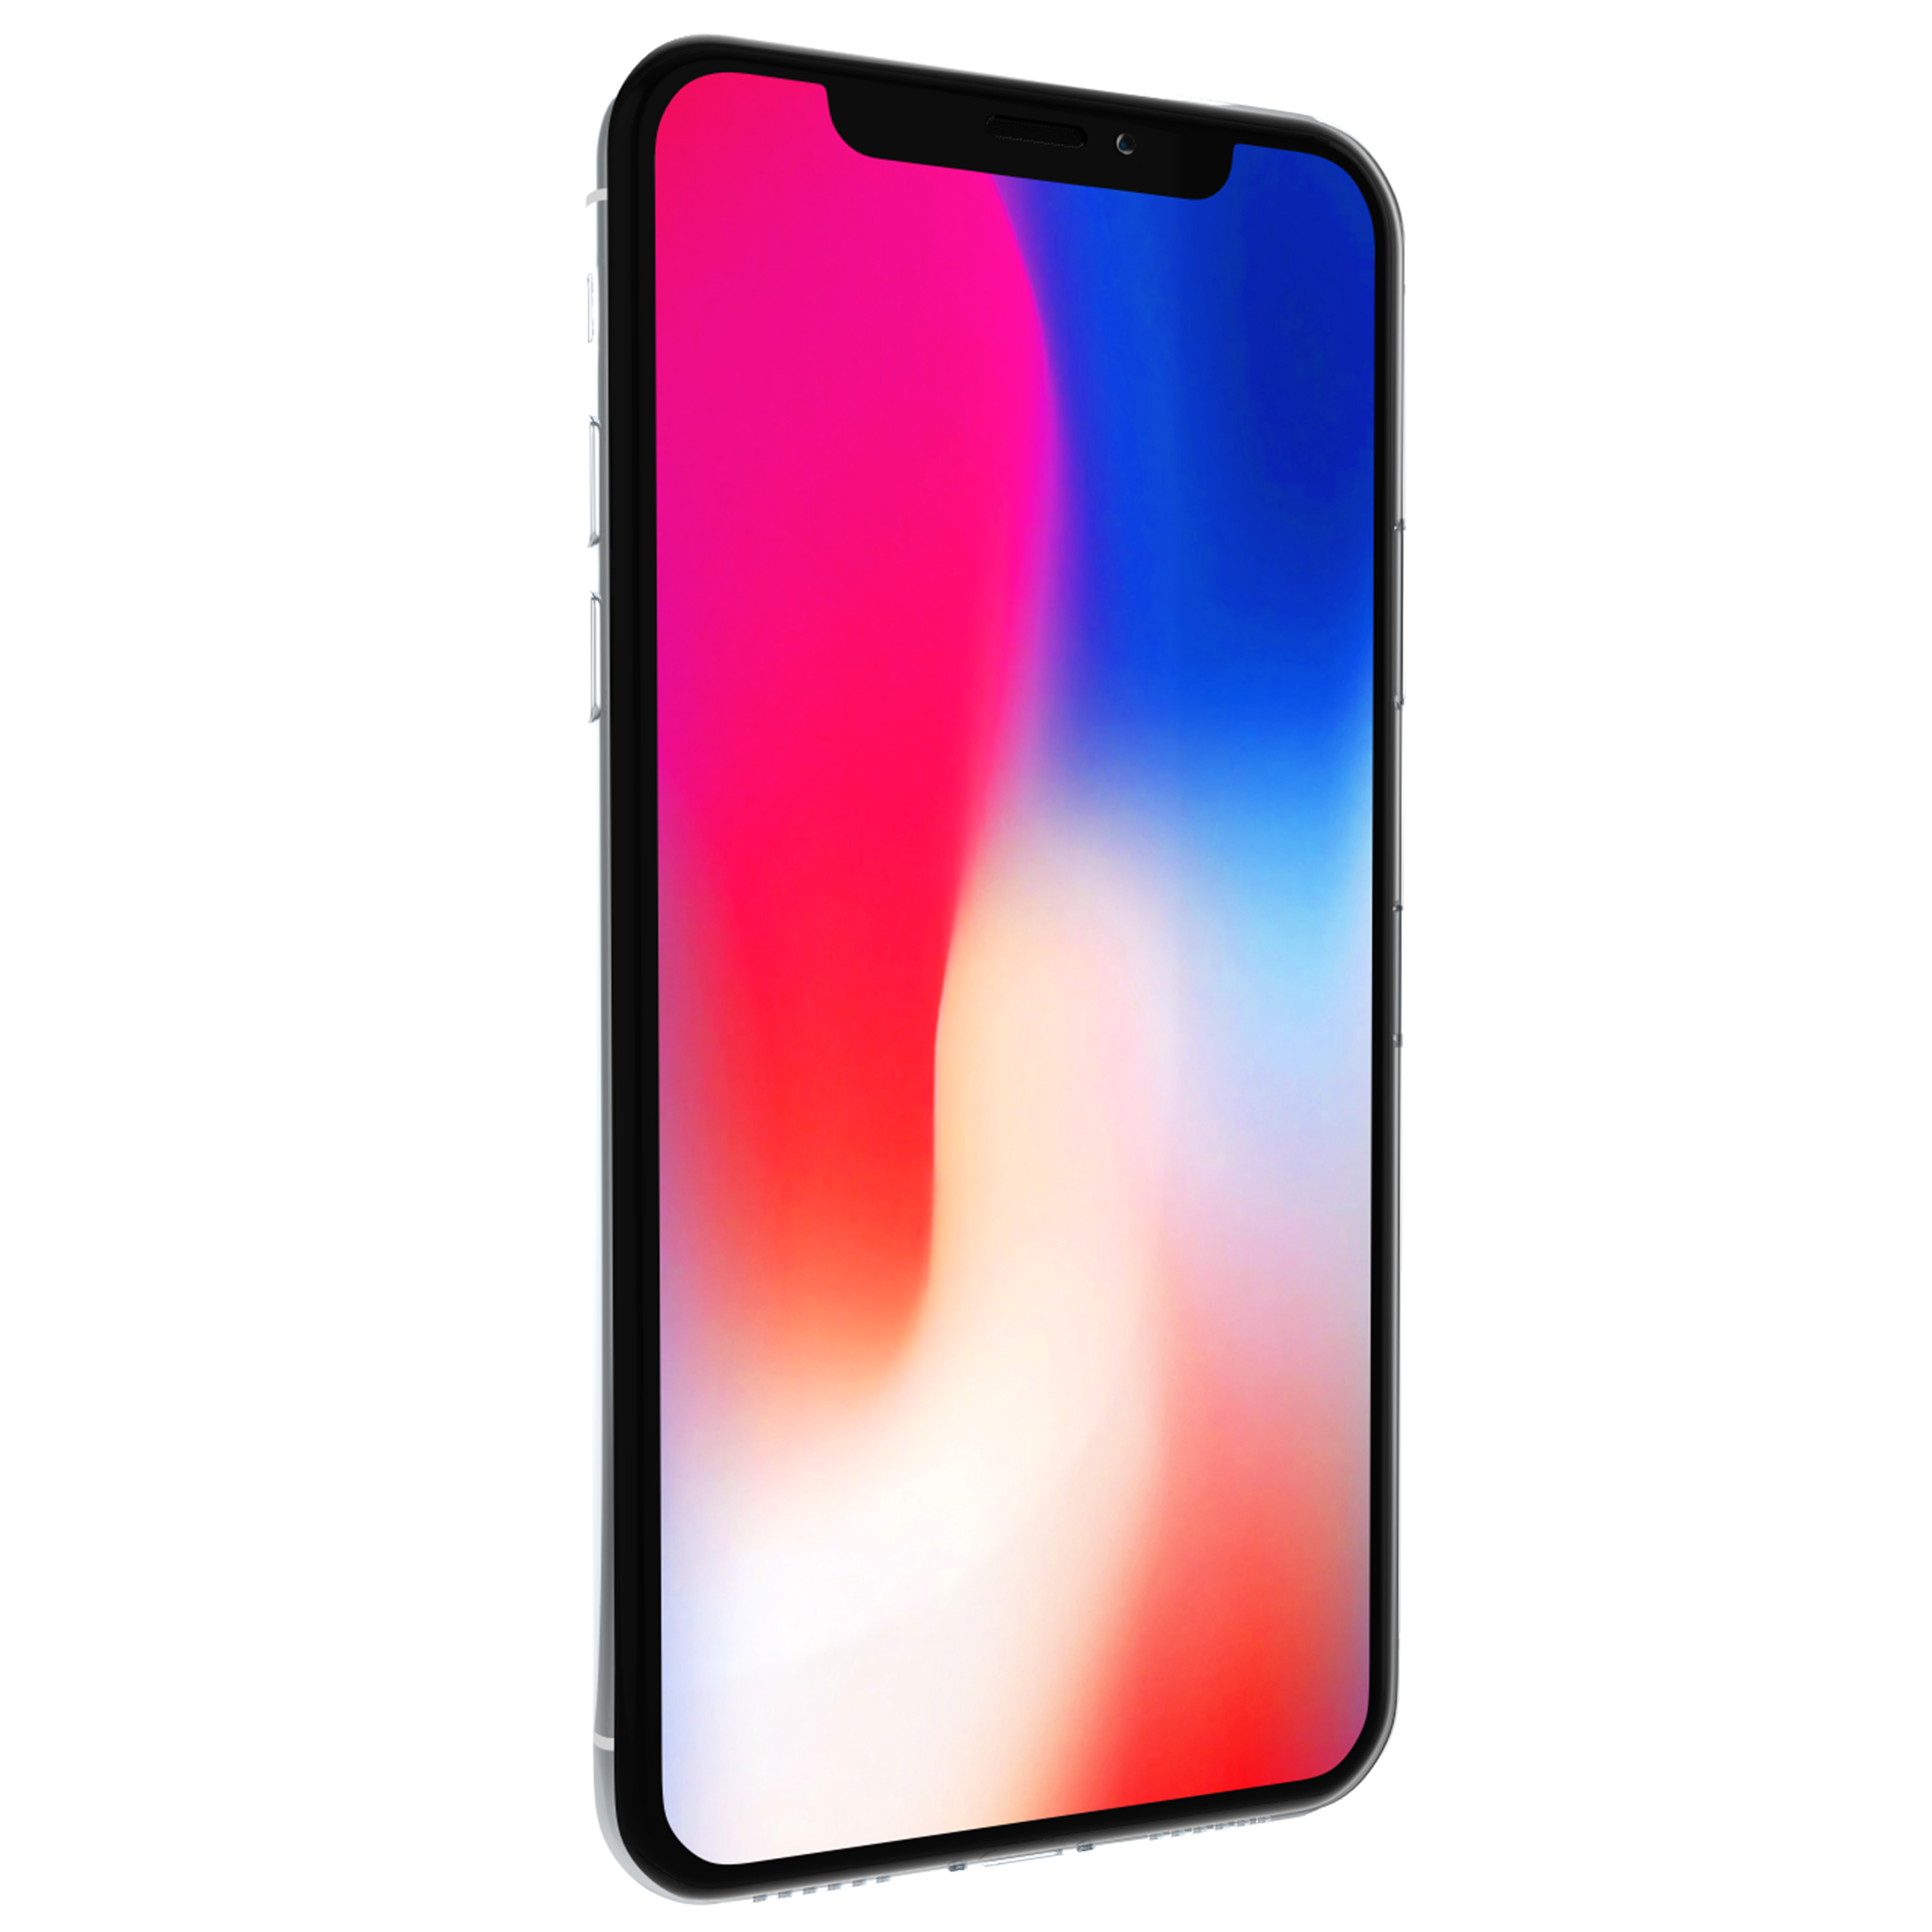 Apple Iphone X Png Image Iphone Phone Iphone Models